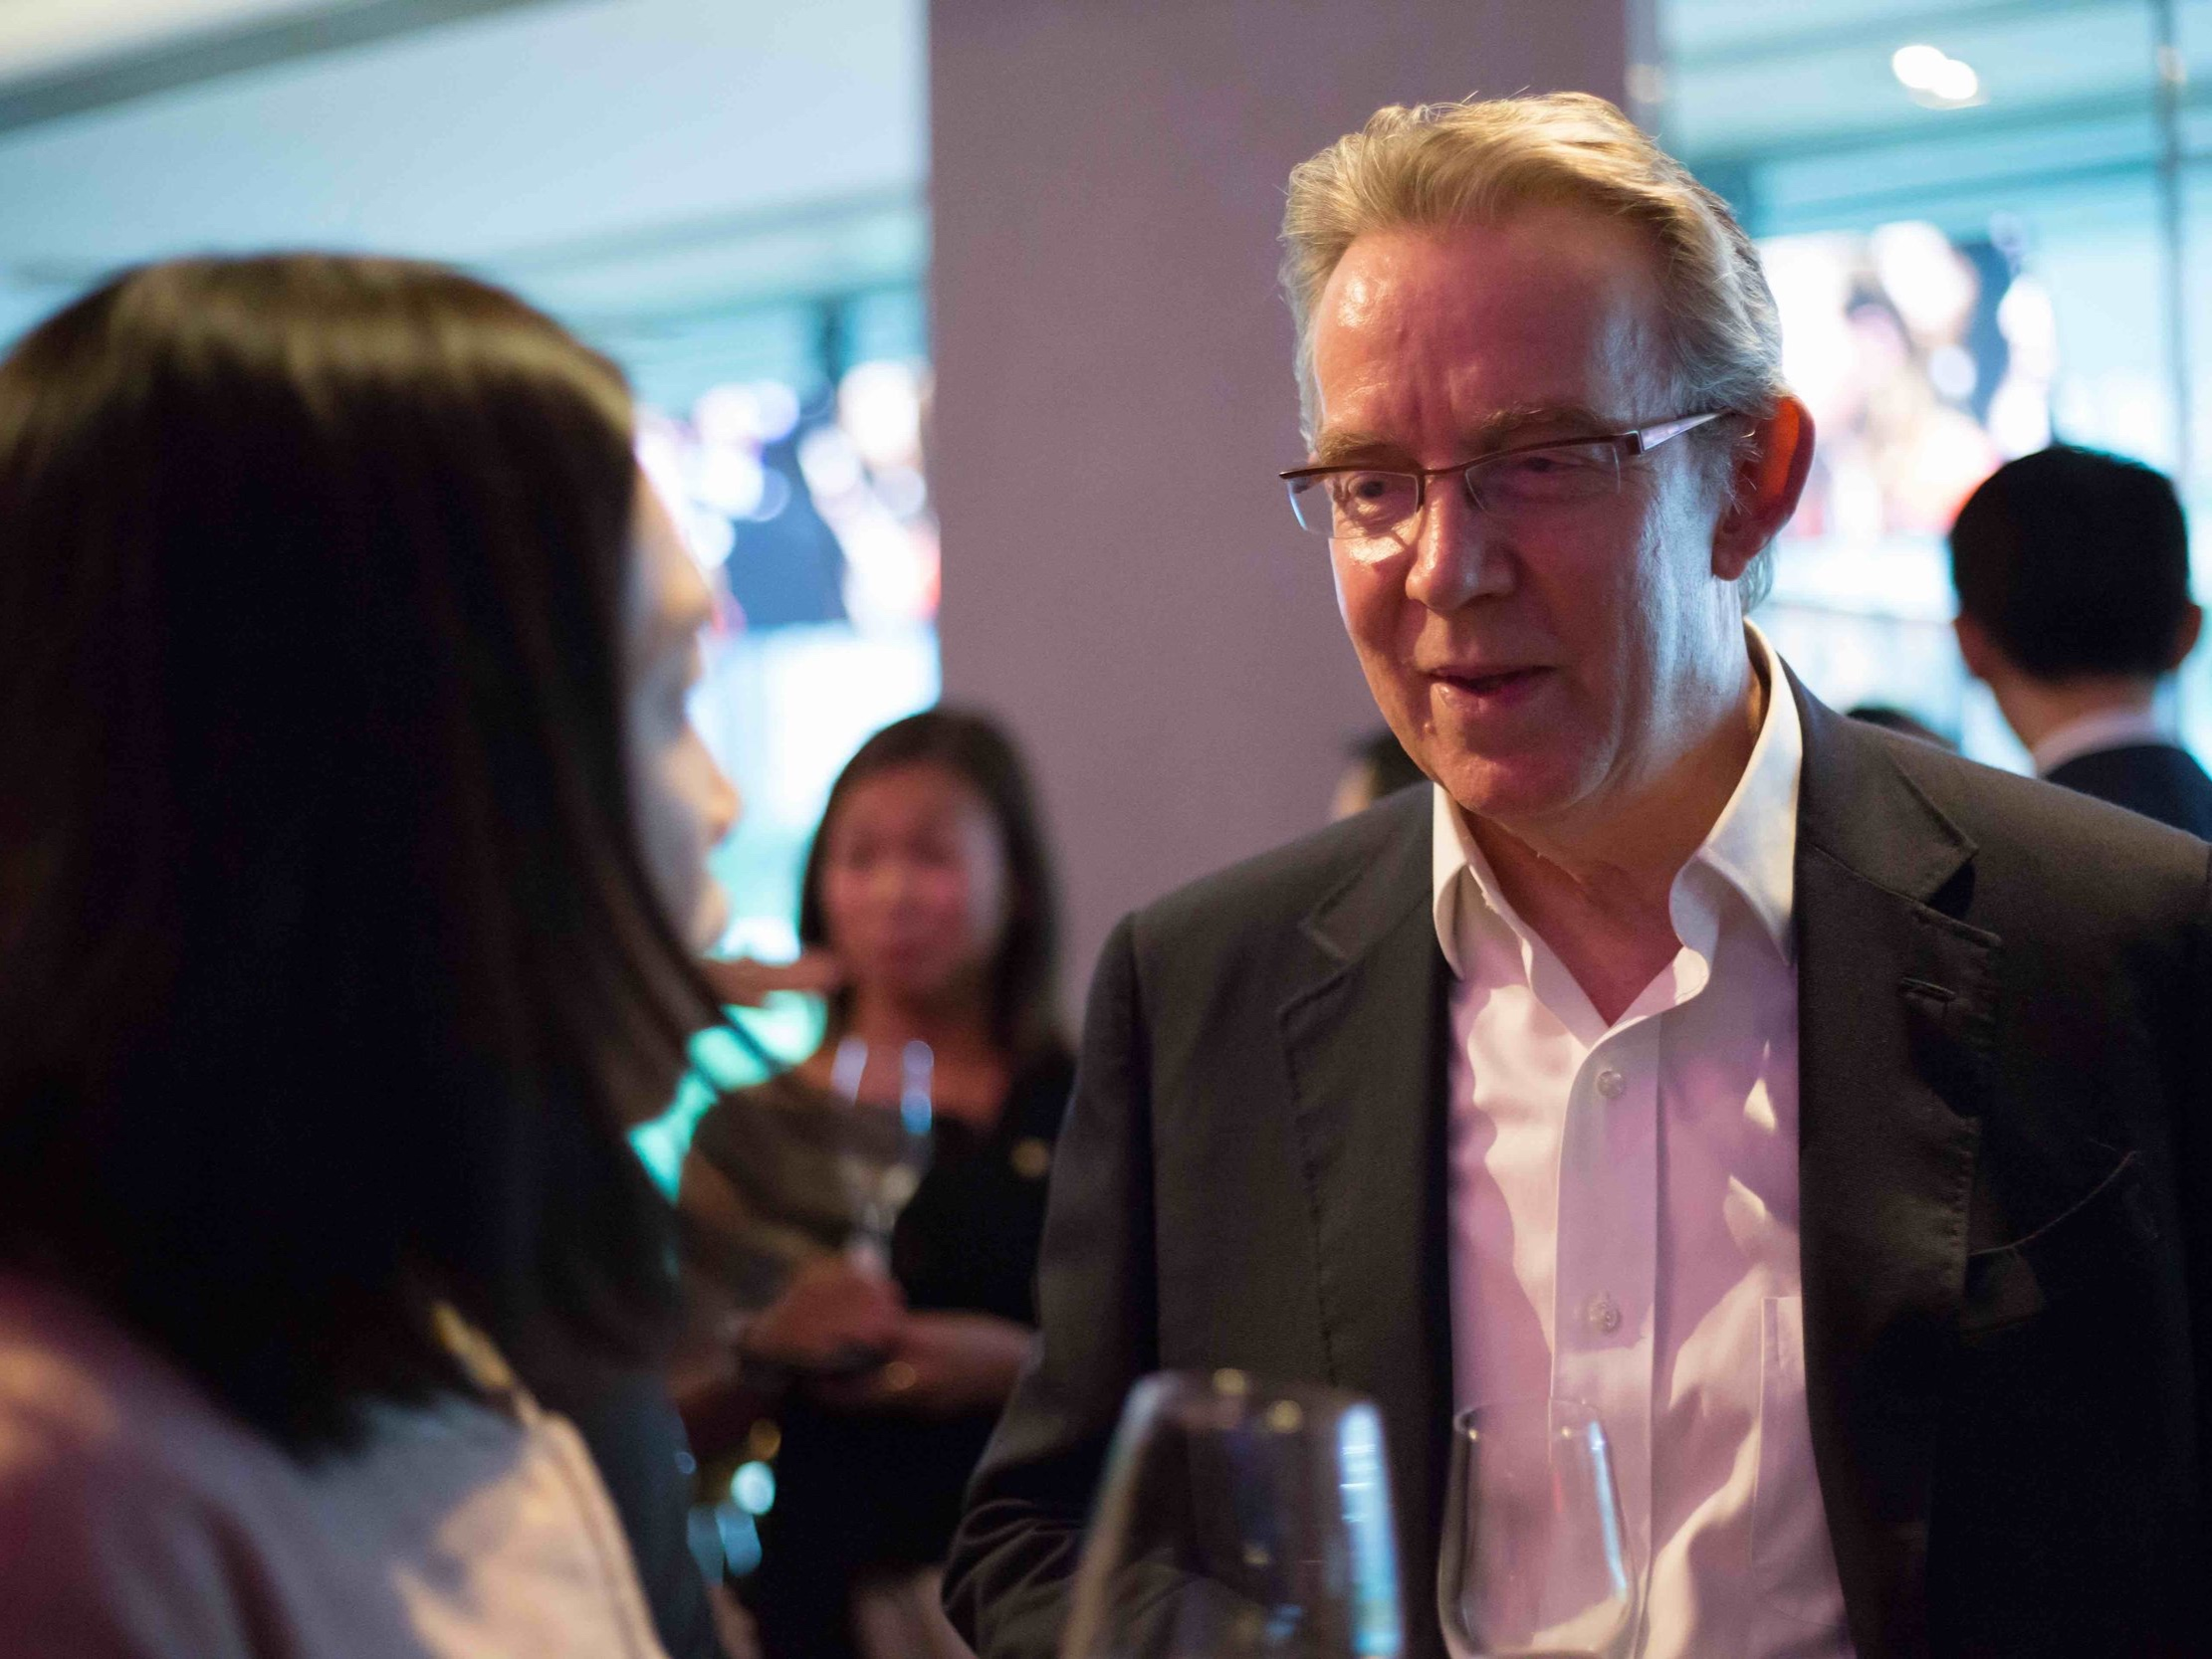 Nicholas Sallnow-Smith (ex-CEO North Asia of Standard Chartered; ex-Chairman, Link REIT)